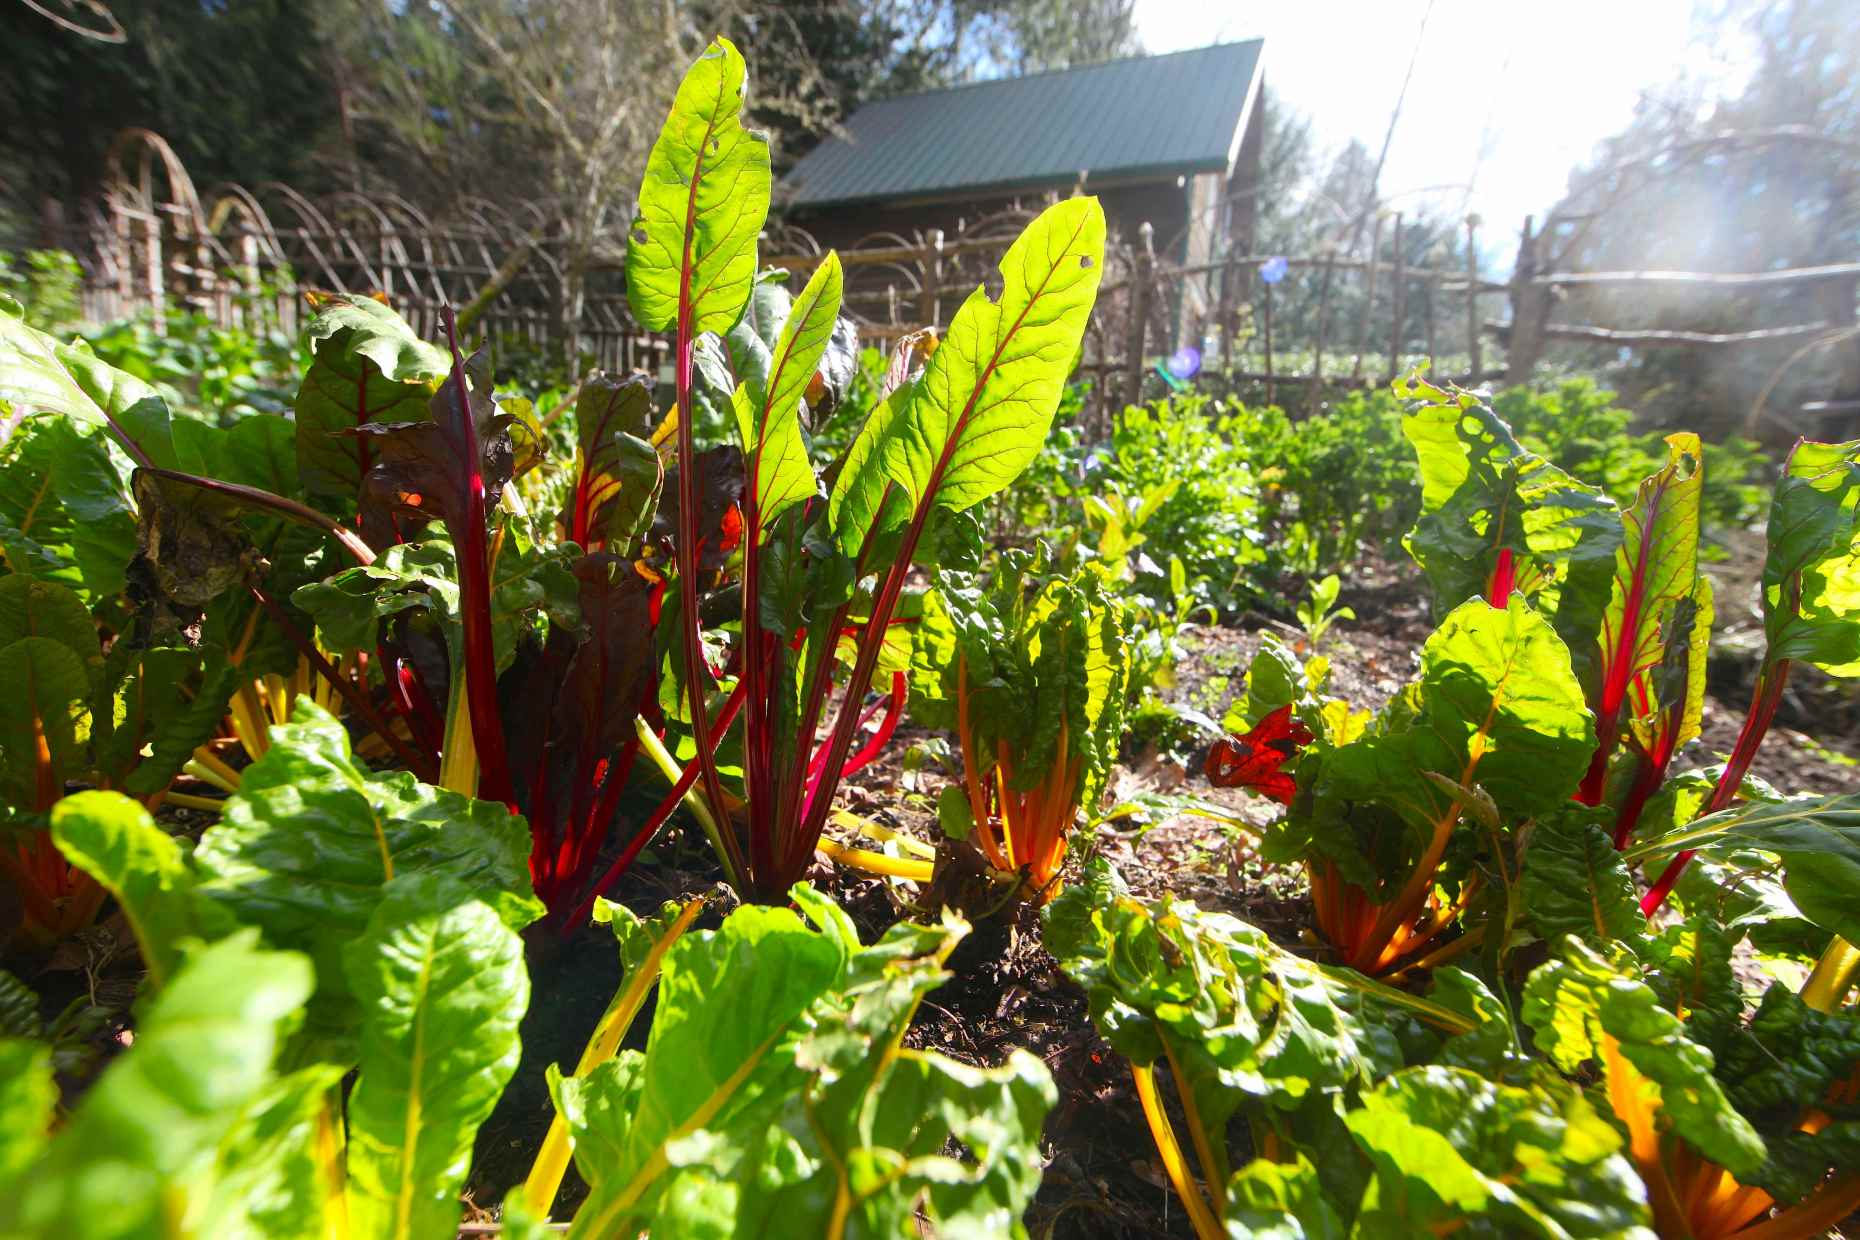 Homesteaders' dream garden in the middle of winter, thanks to our composting chick yard. Photo © Liesl Clark